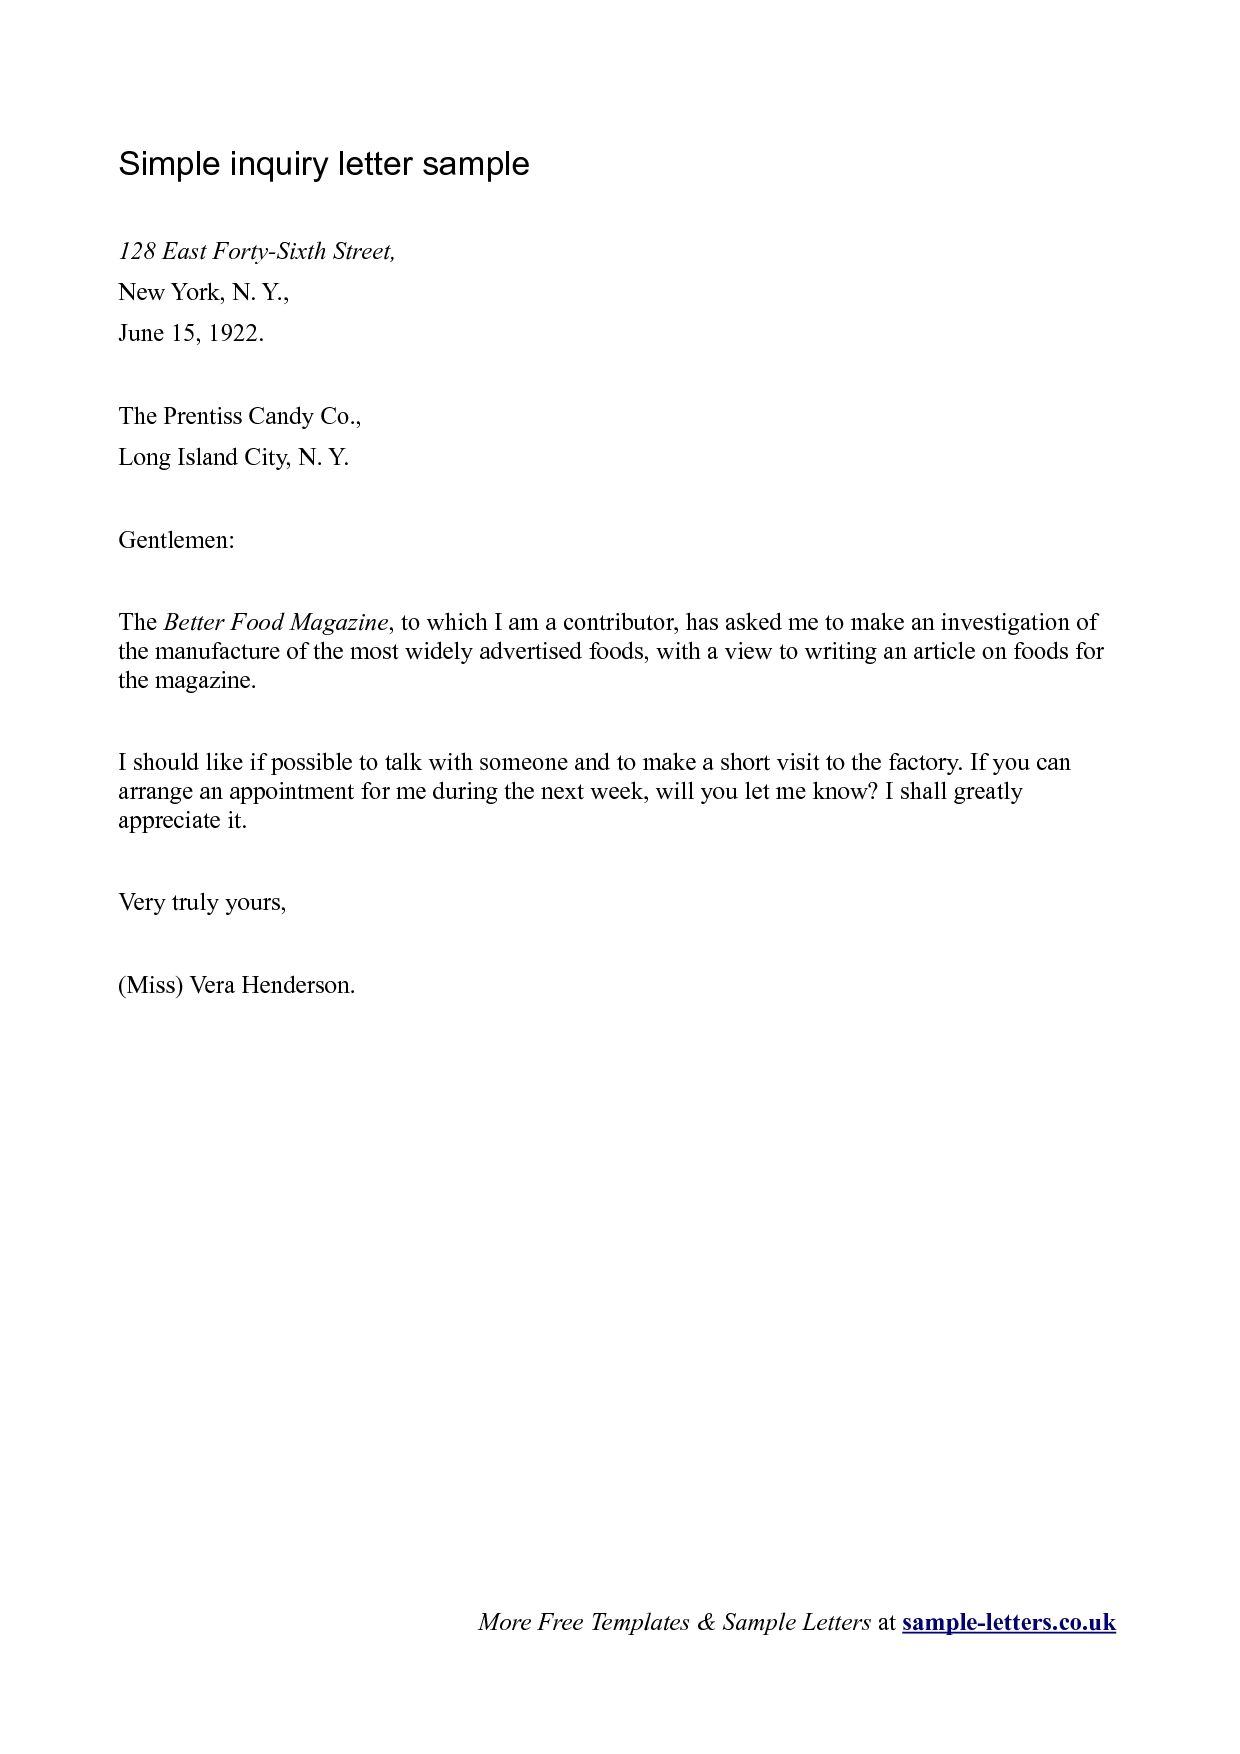 Superior Business Letter Of Inquiry Sample The Letter Sample Throughout Inquiry Letters Example